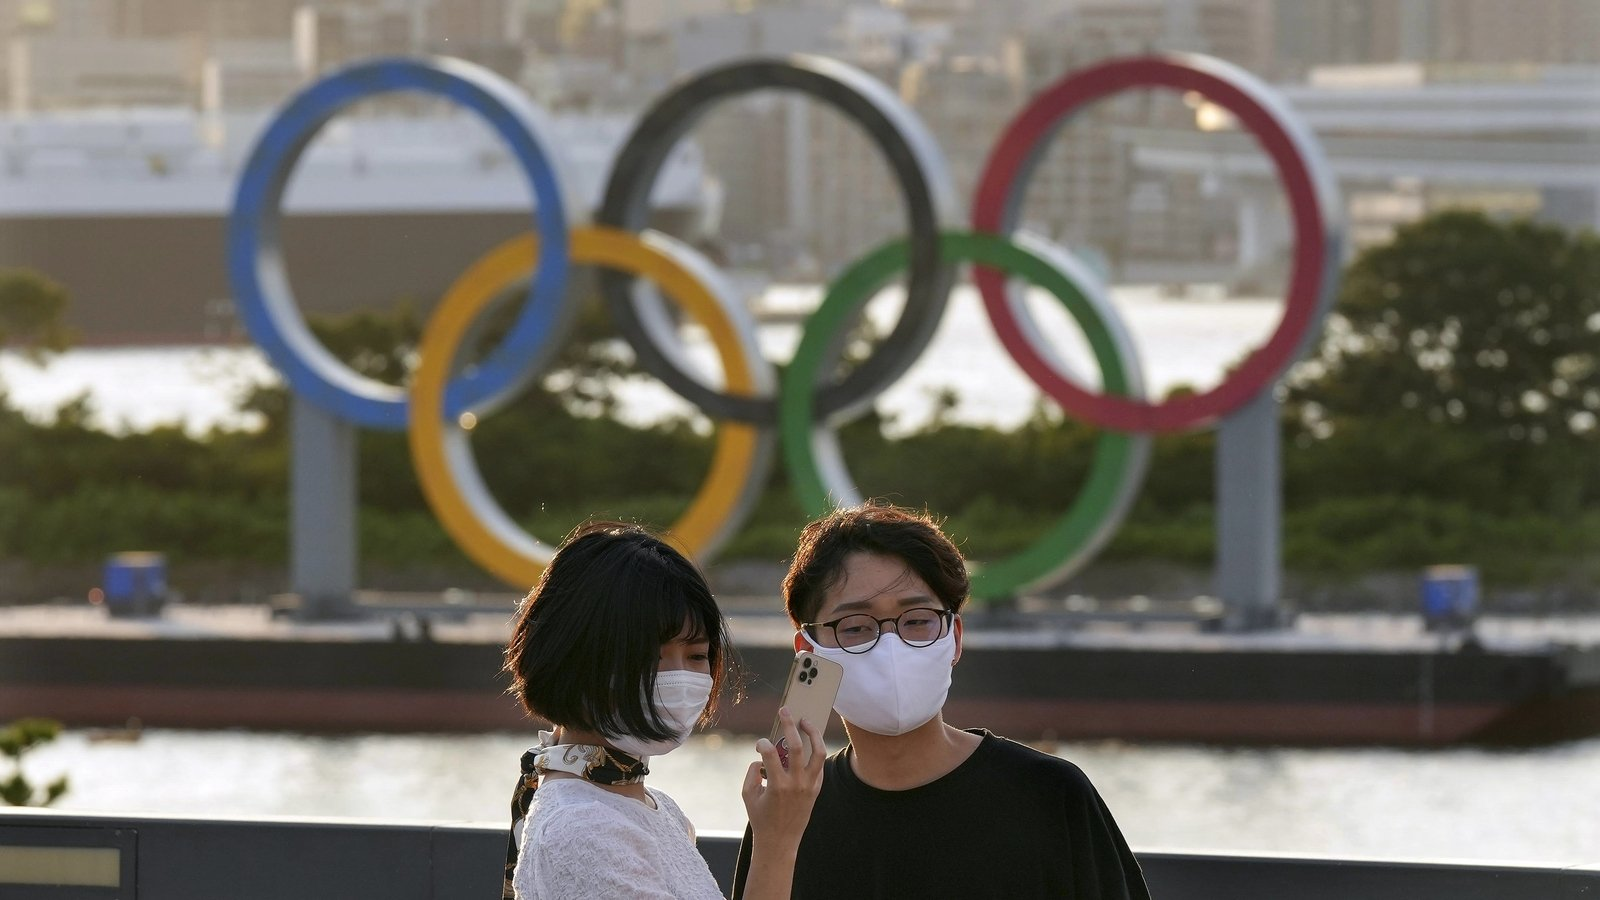 Japan's economy bounced back in front of the Olympics, data shows